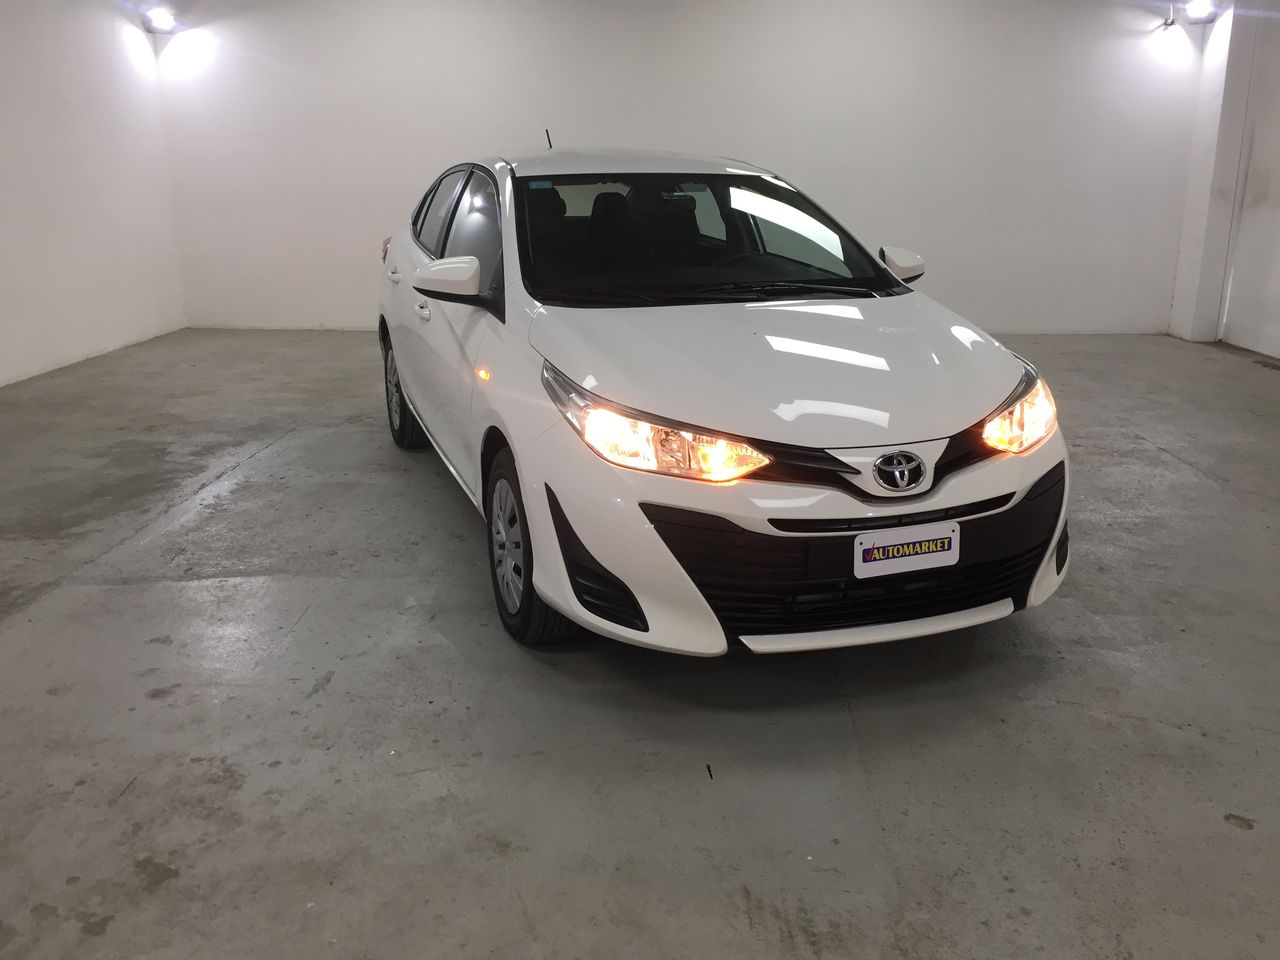 TOYOTA YARIS SUPER WHITE II 2018 CL6248